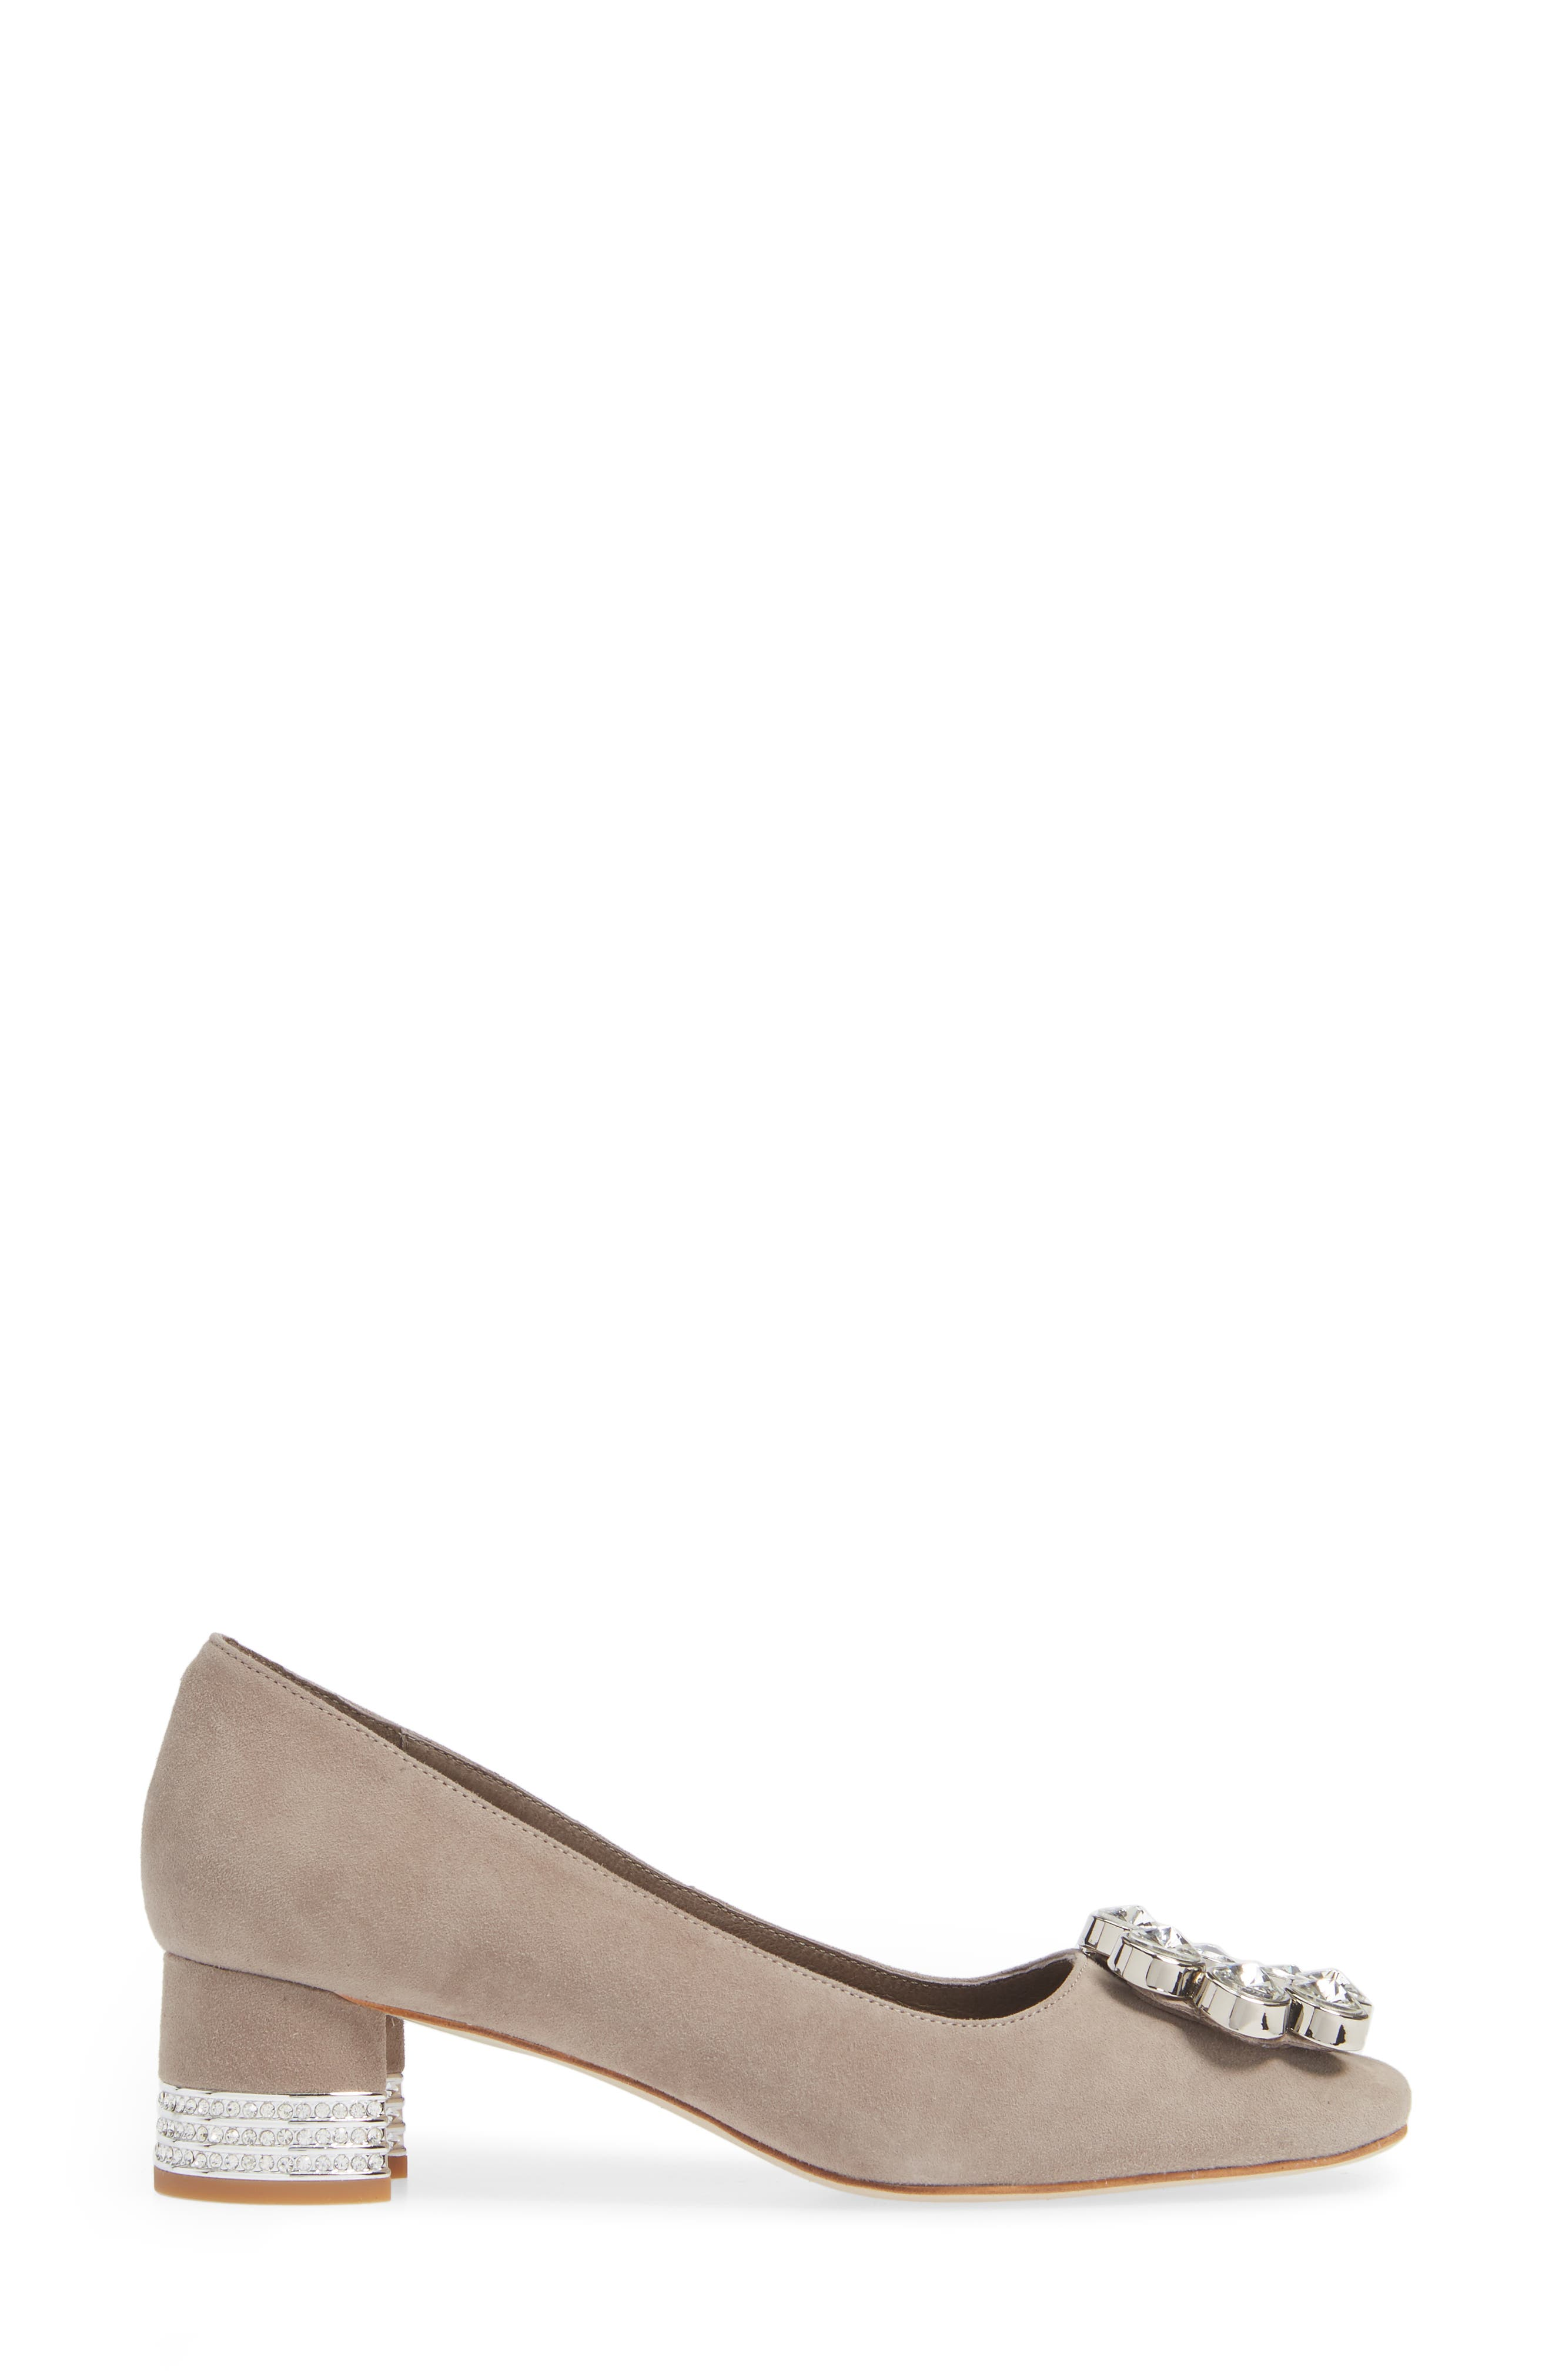 JEFFREY CAMPBELL, Carys Pump, Alternate thumbnail 3, color, TAUPE SUEDE